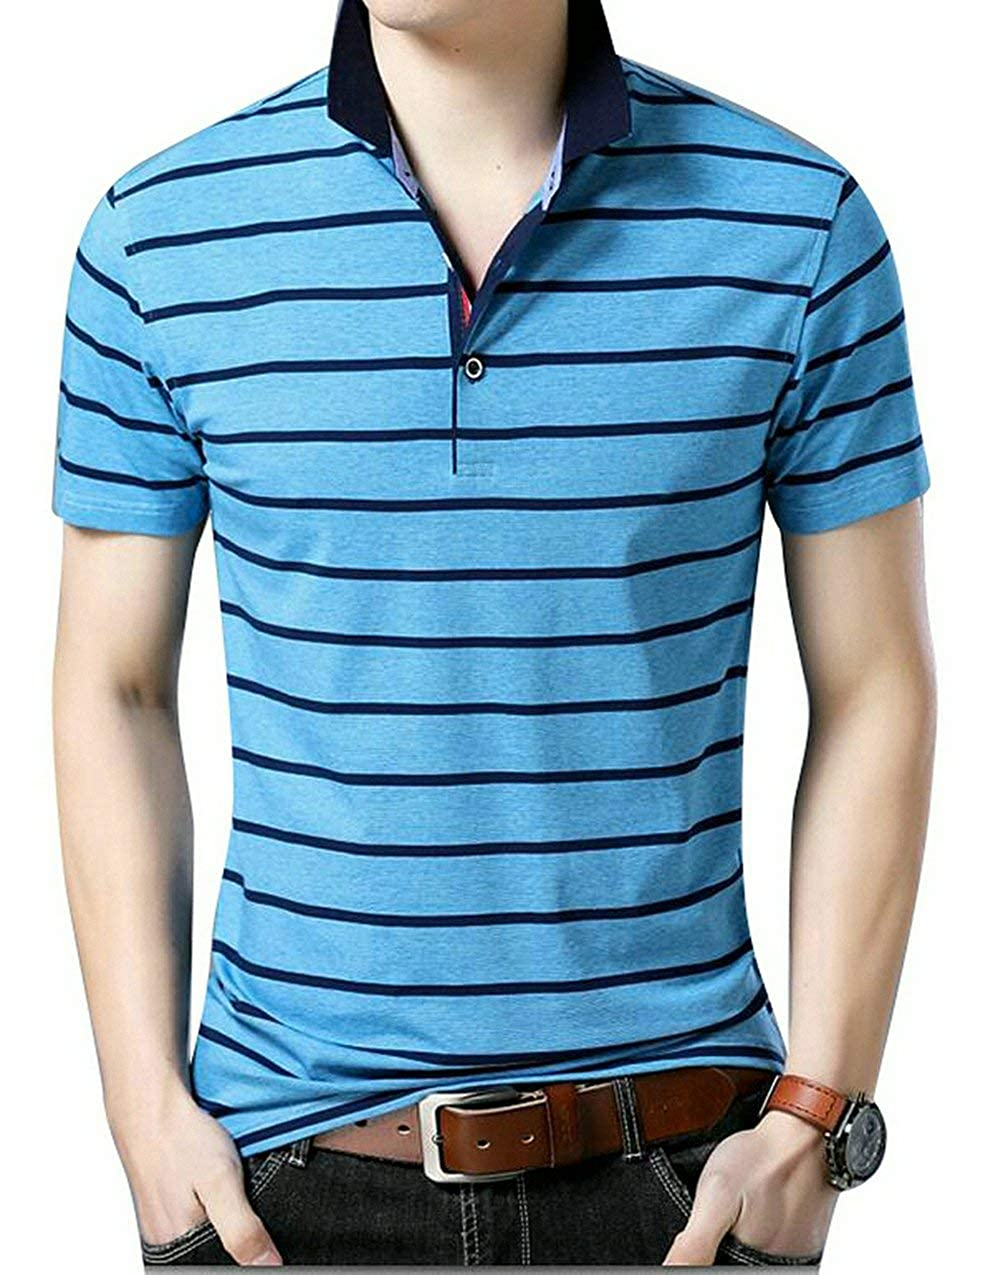 MK988 Mens Classic Lapel Stripe Short Sleeve Buttons Business Golg Polo Shirt Top